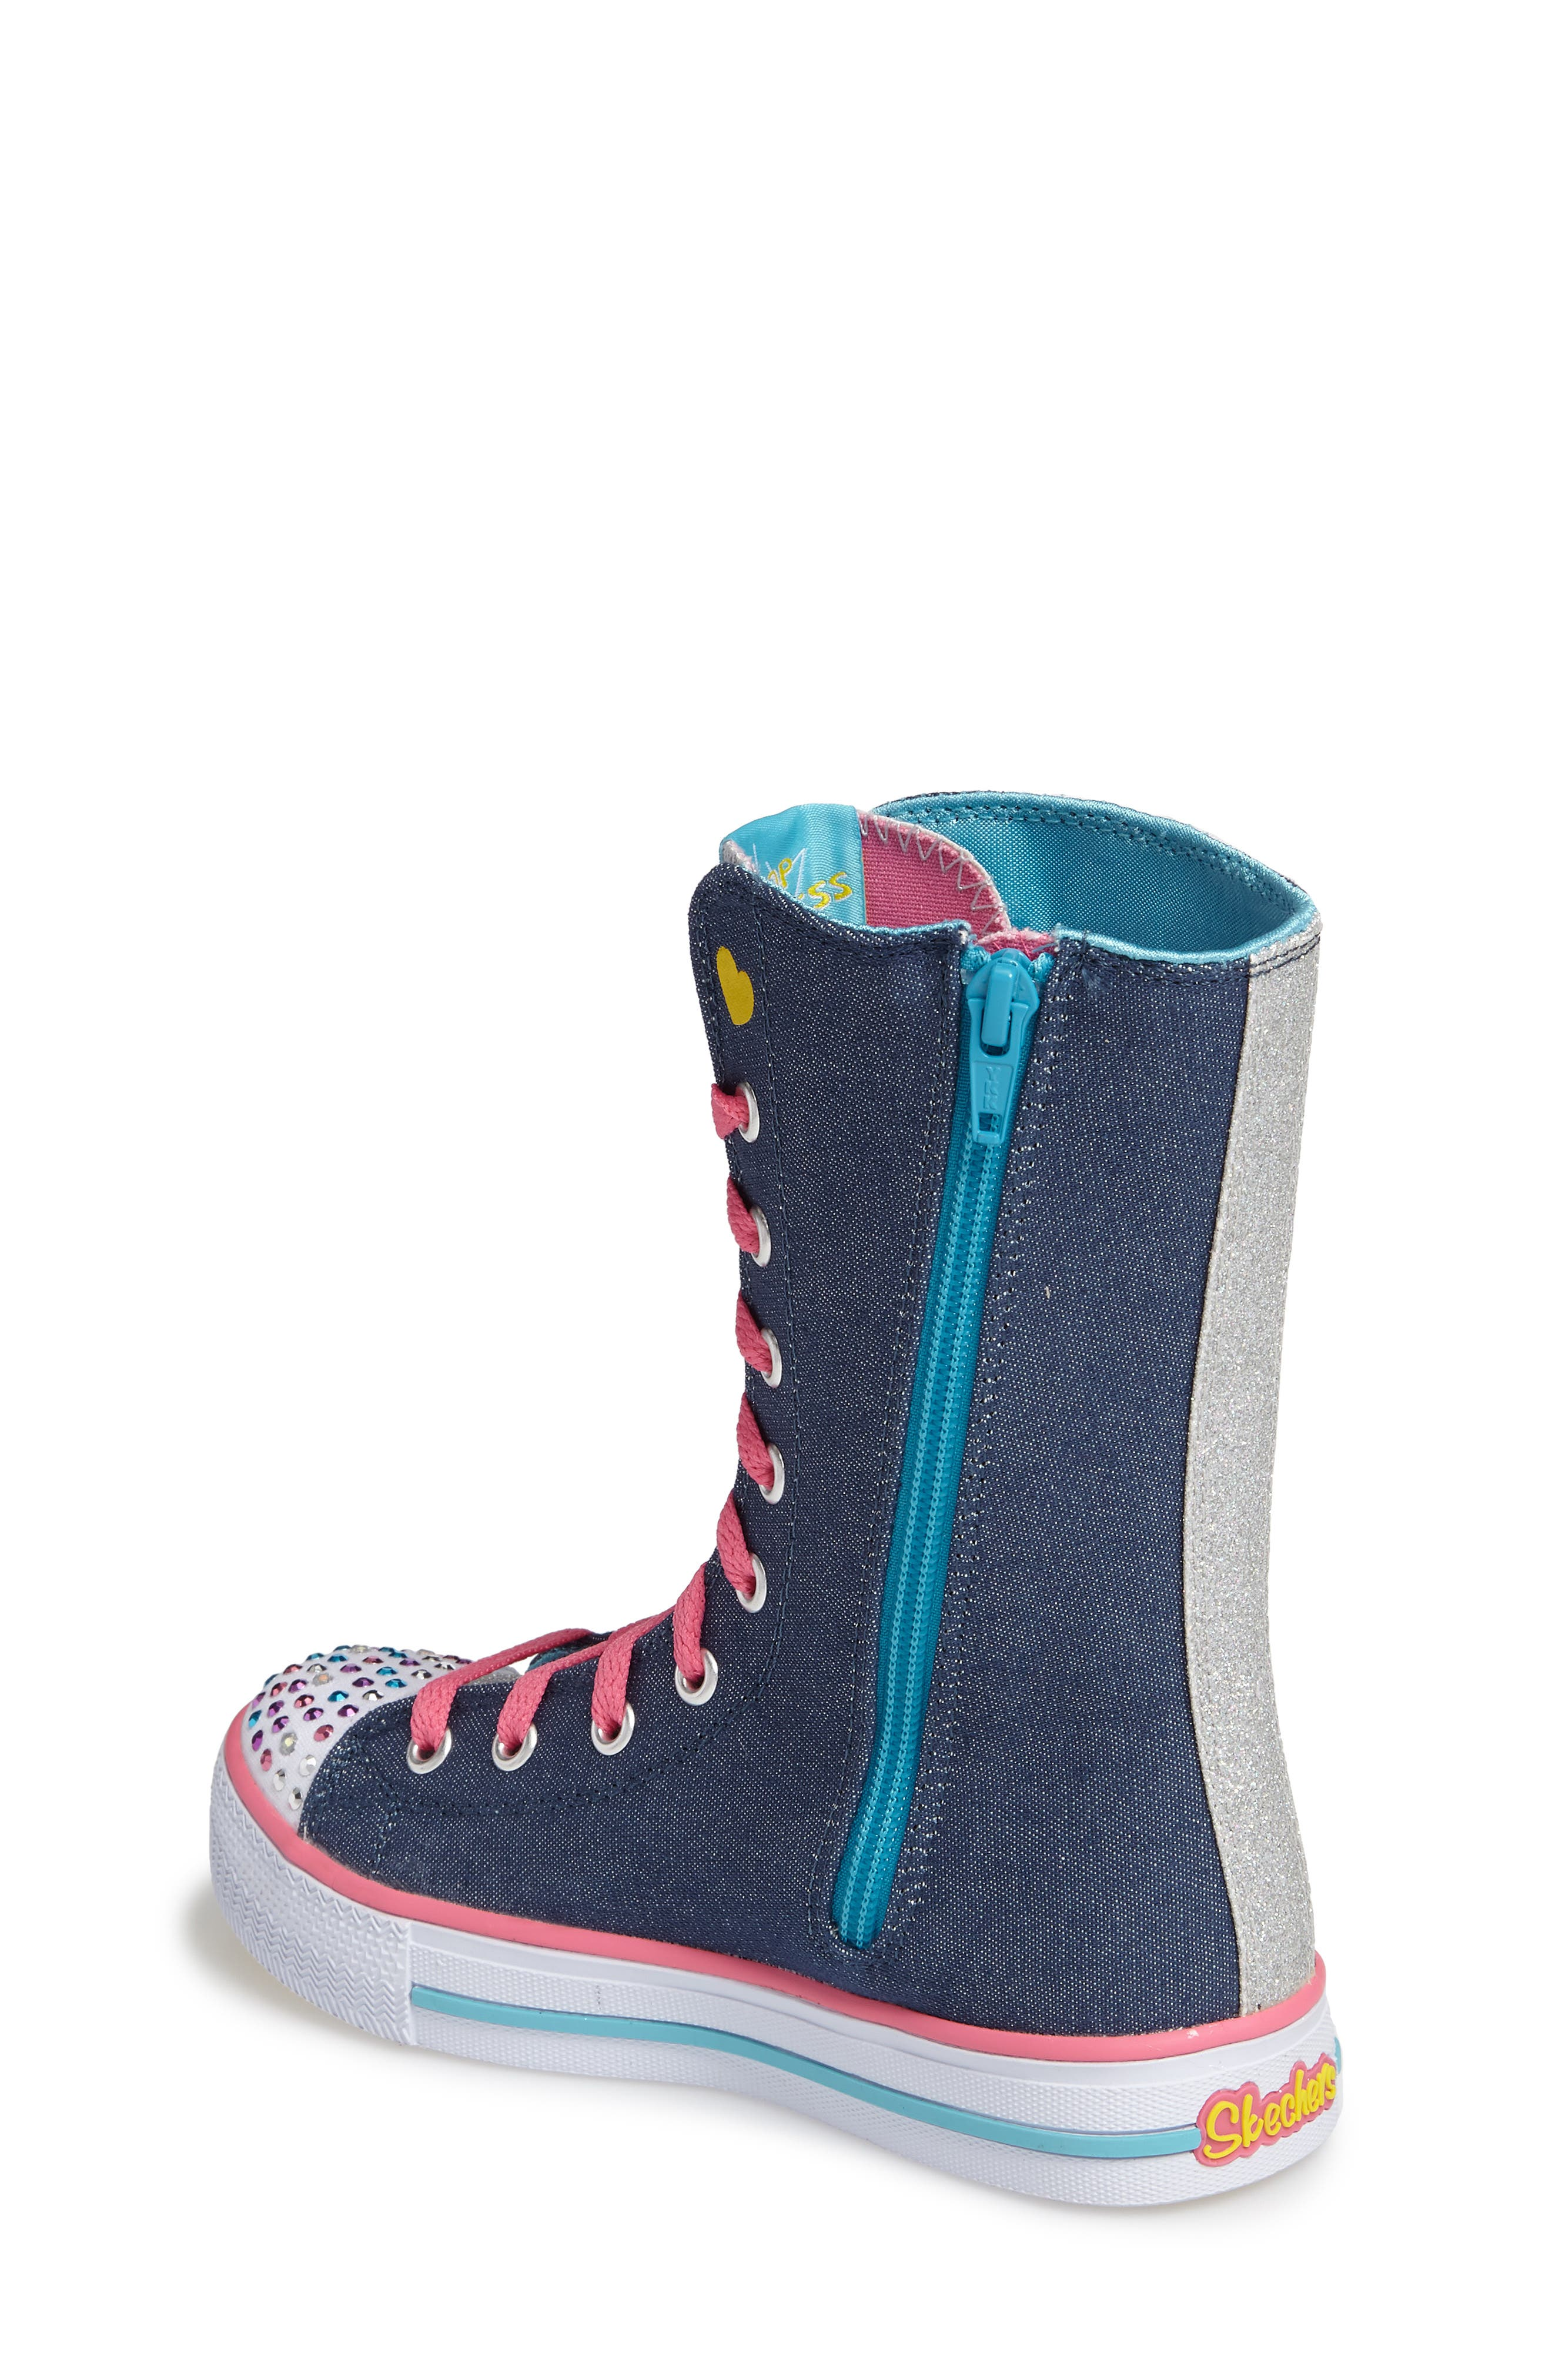 Twinkle Toes Shuffles Ultra High Top Sneaker,                             Alternate thumbnail 2, color,                             468